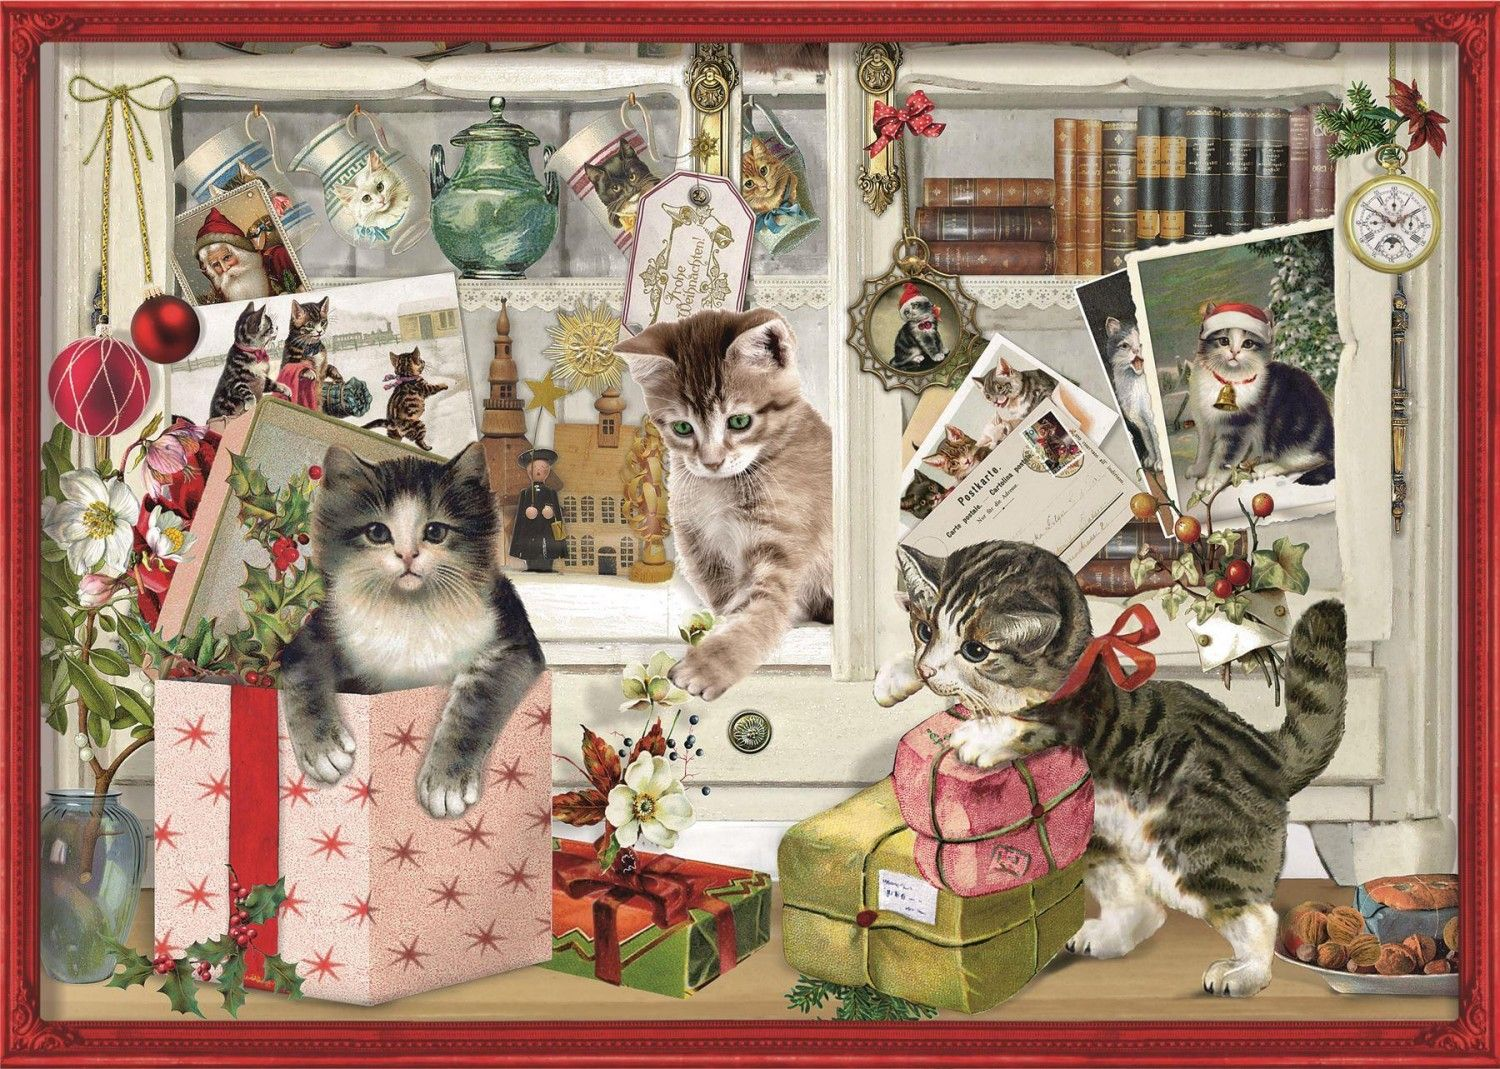 Deluxe Traditional A4 Christmas Advent Calendar Playful Christmas Kittens Christmas Advent Calendar Christmas Advent Christmas Kitten